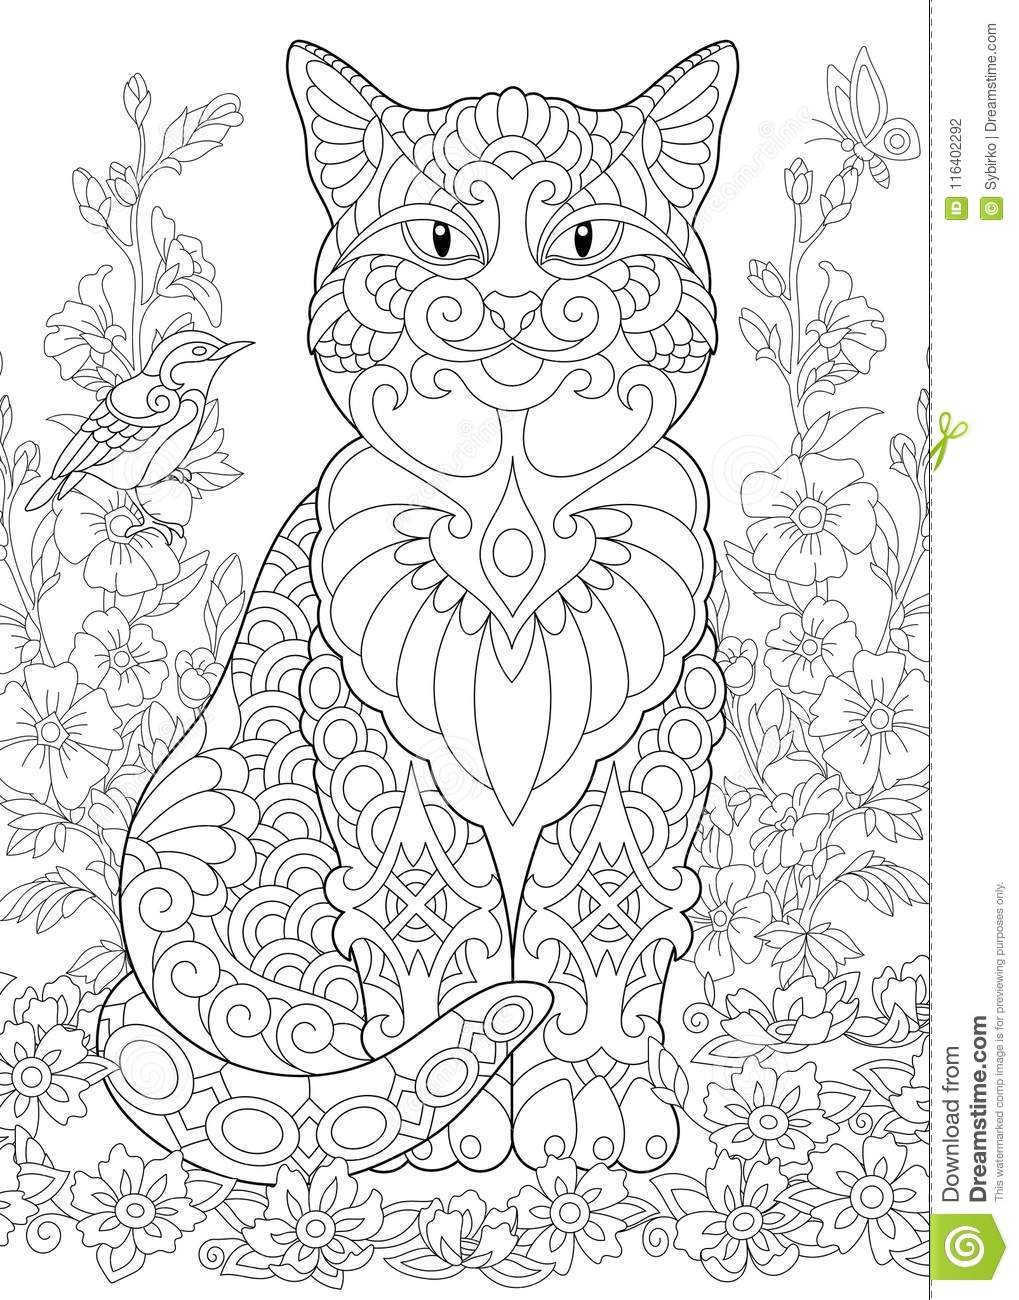 Zentangle spring cat stock vector. Illustration of background